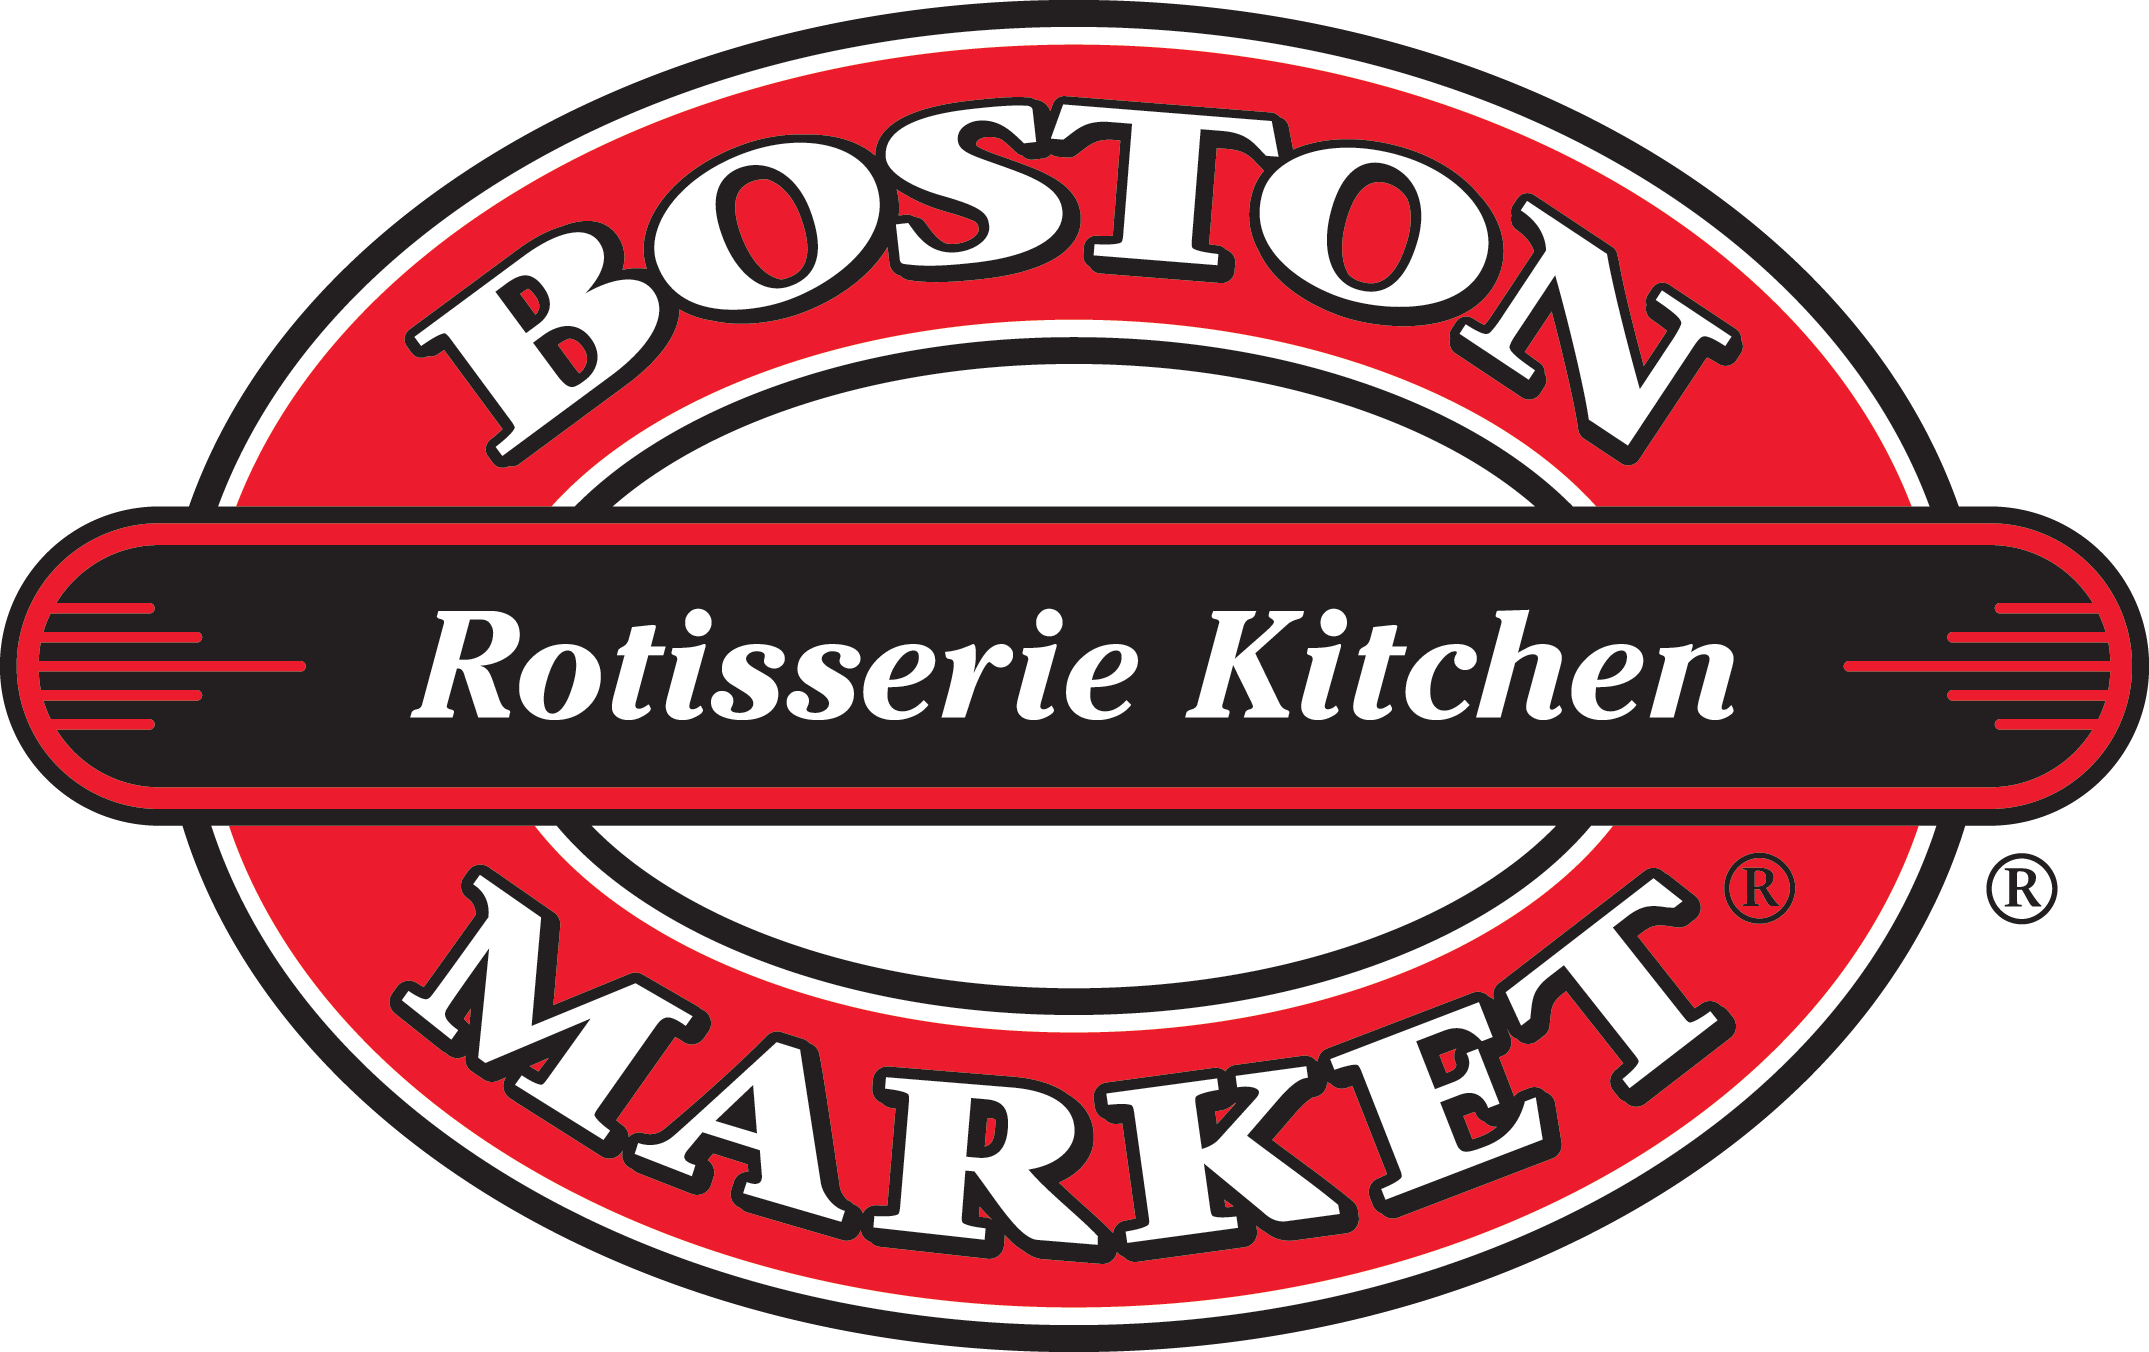 Boston Market BOGO Individual Meal w/drink purchase 9/10-9/12/21